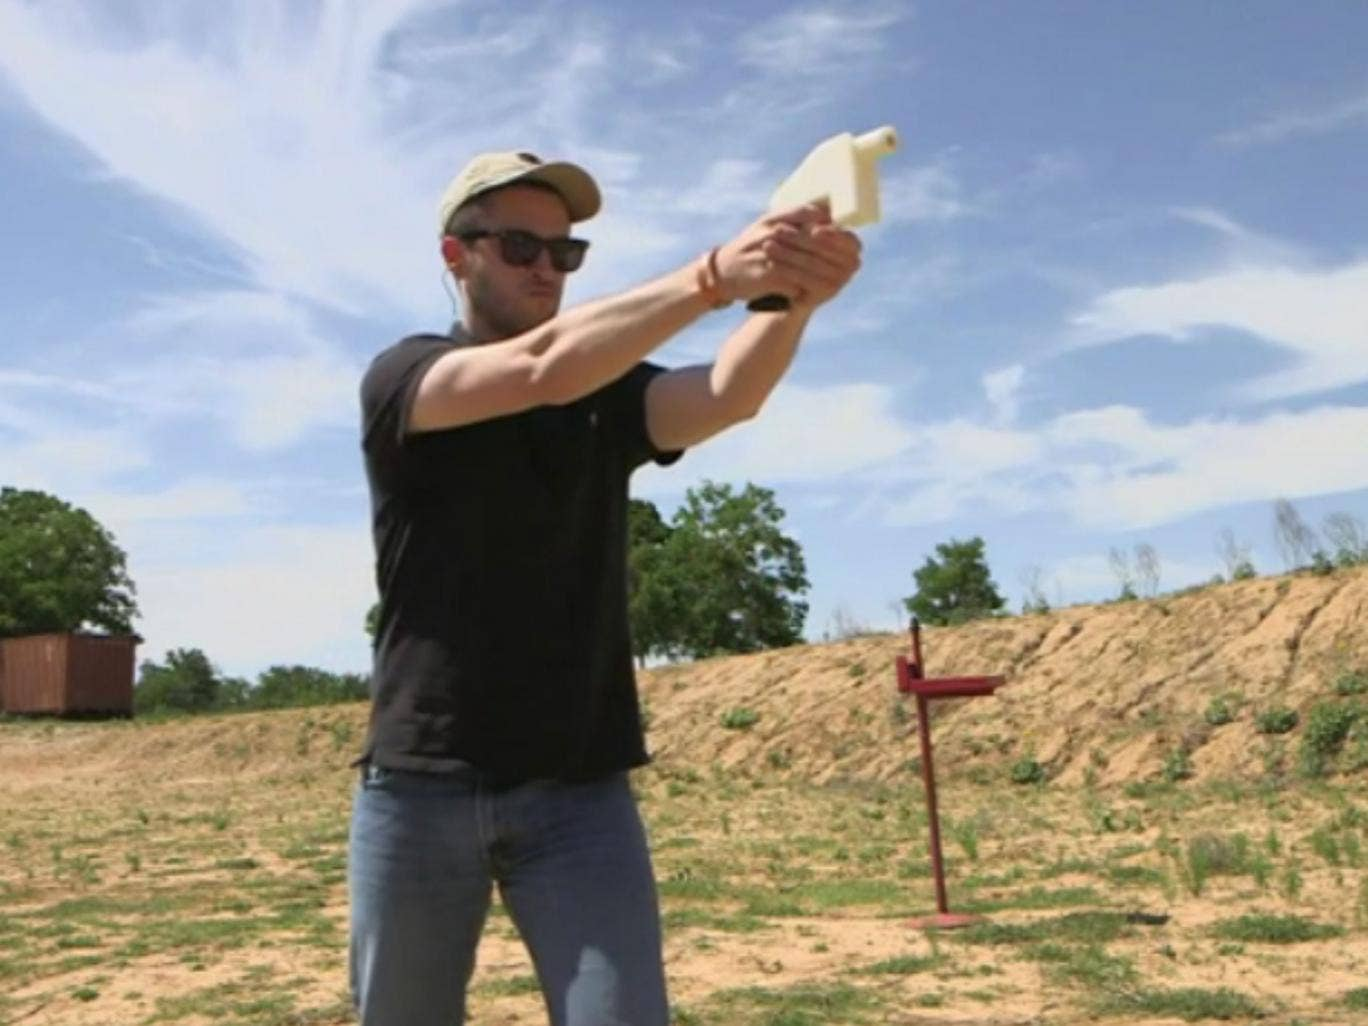 Cody Wilson test fires the Liberator, which is a 3D printer handgun